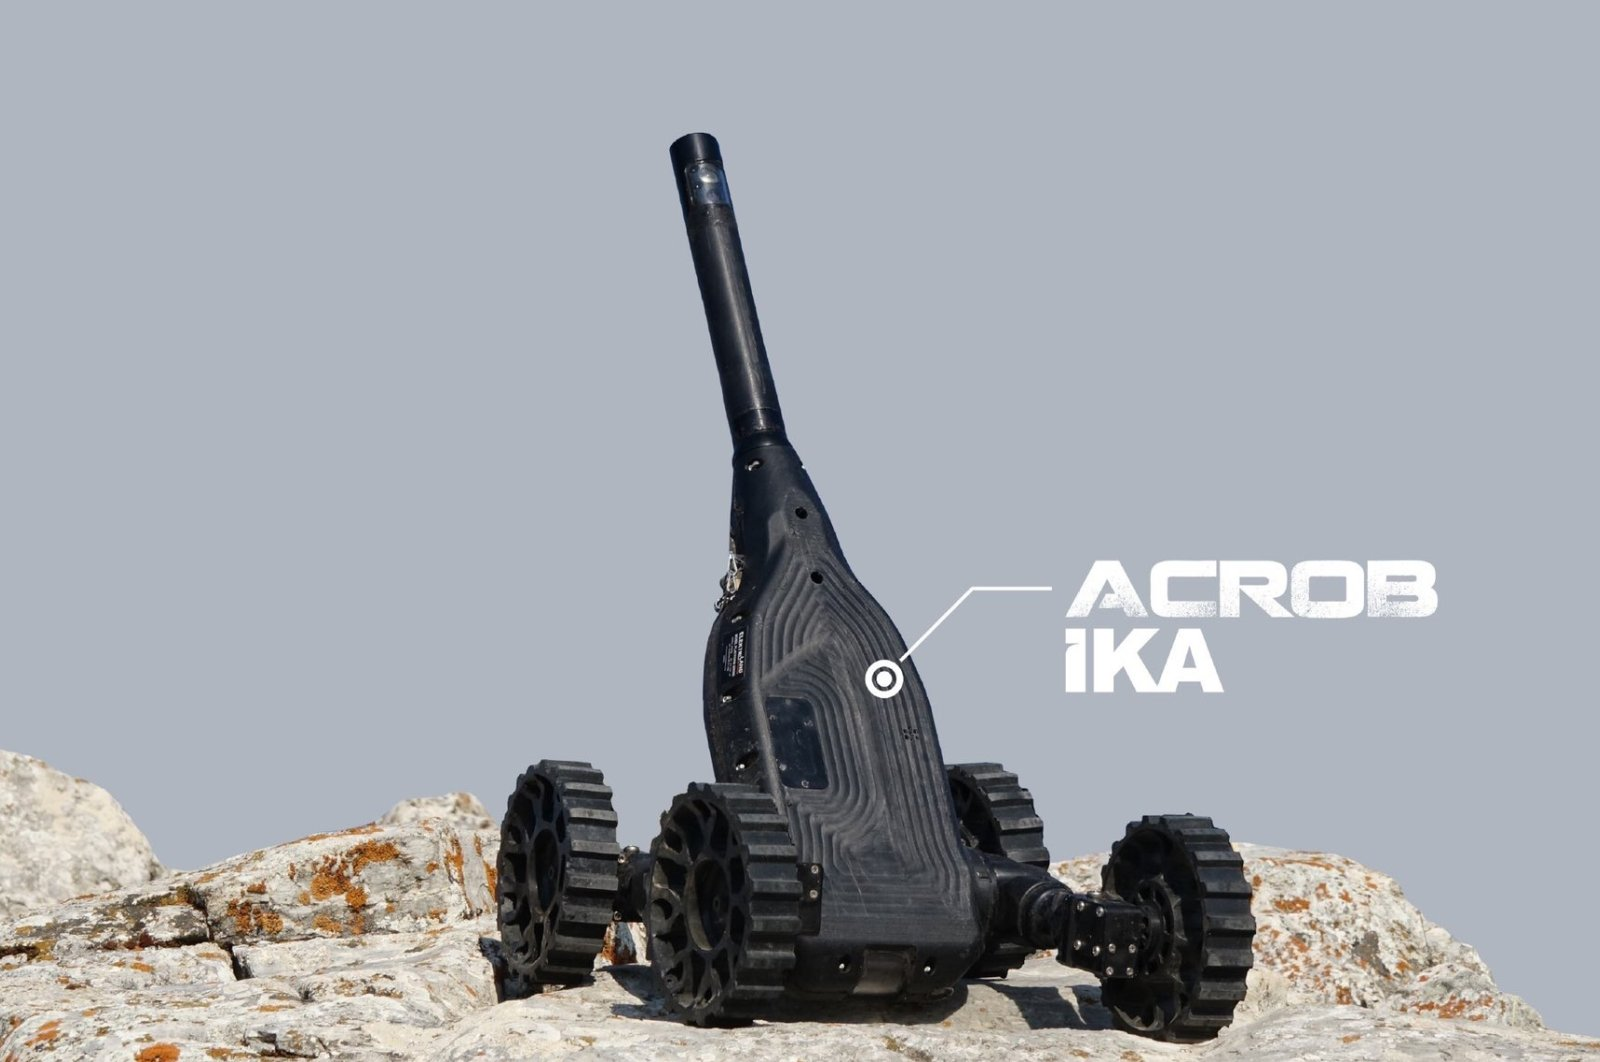 A Turkish-made Acrob IKA (UGV) is seen in this poster shared by the Ministry of National Defense (MSB) on Sept. 29, 2021. (Credit: MSB)